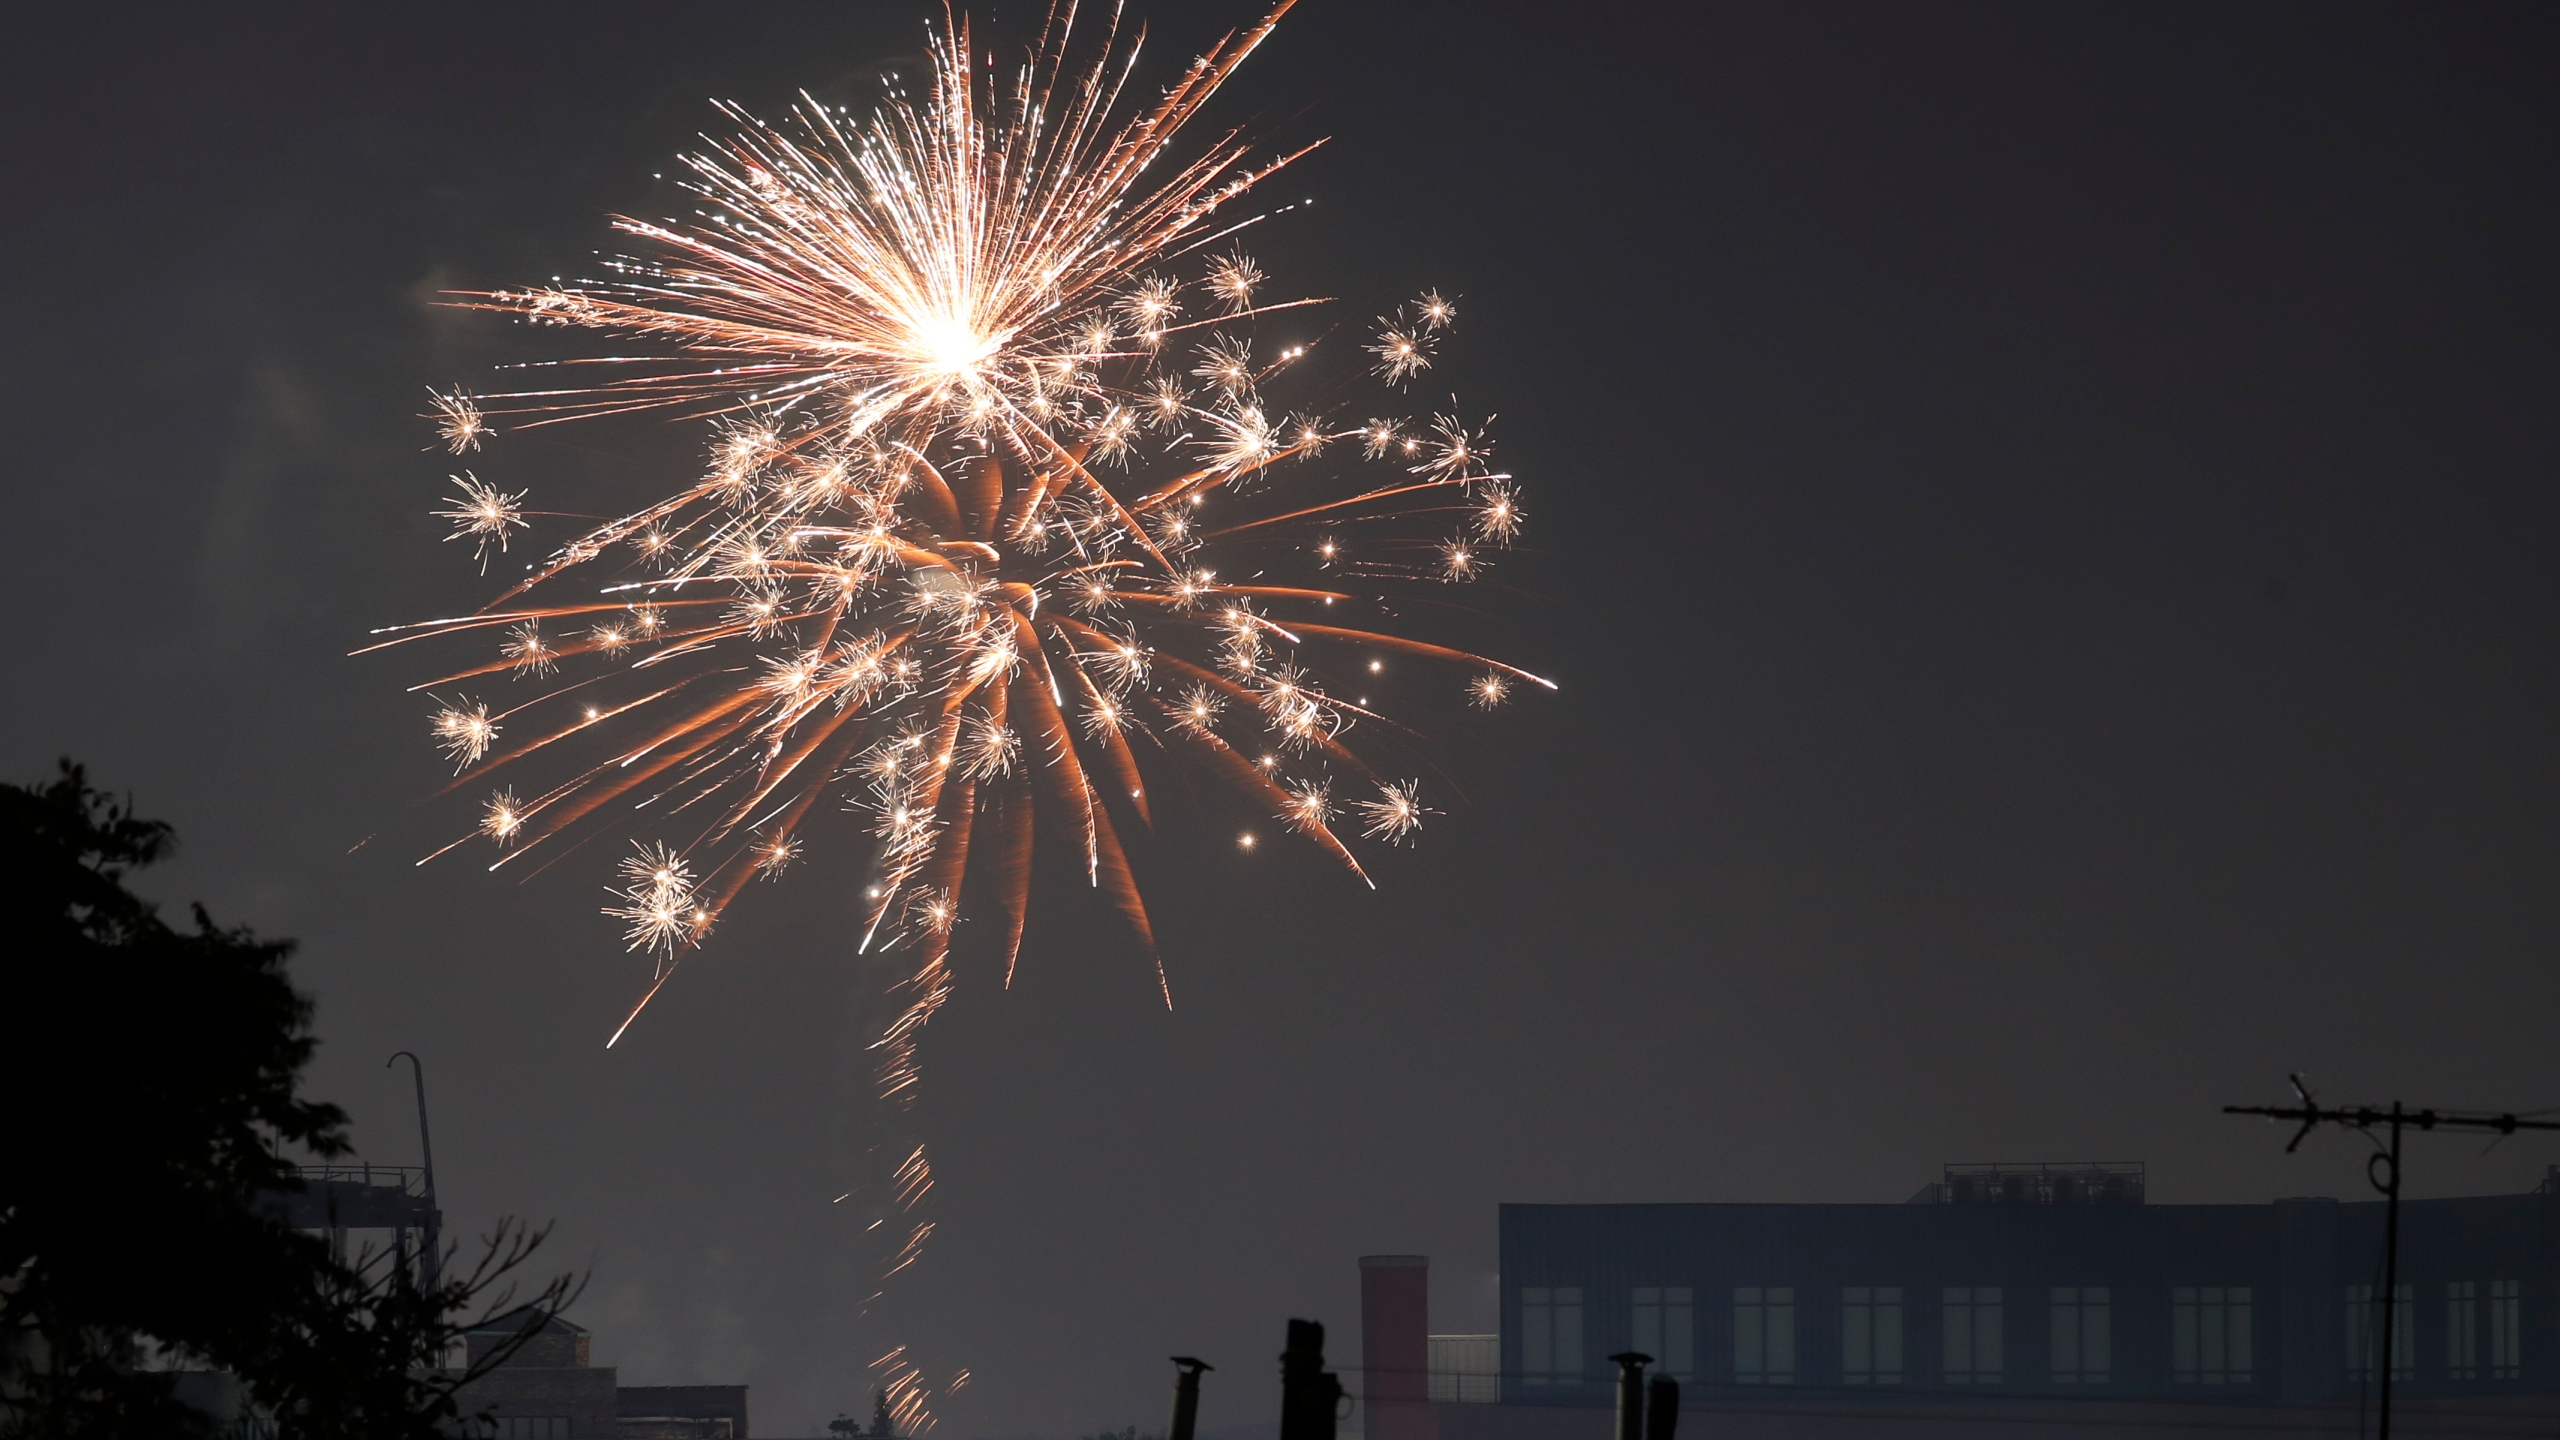 Fireworks in NYC